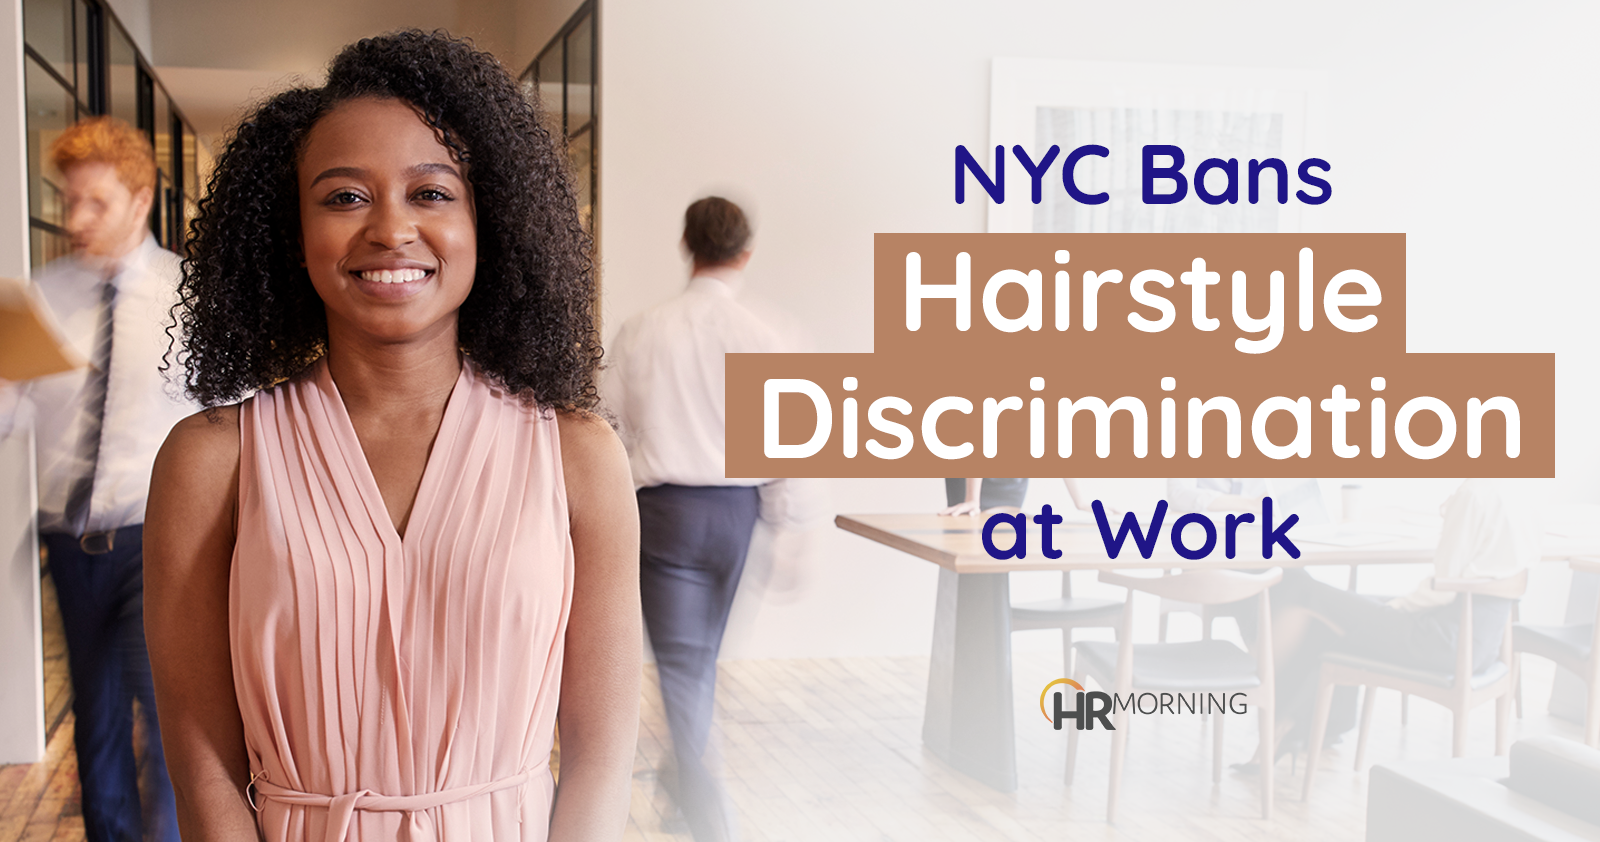 NYC bans hairstyle discrimination at work